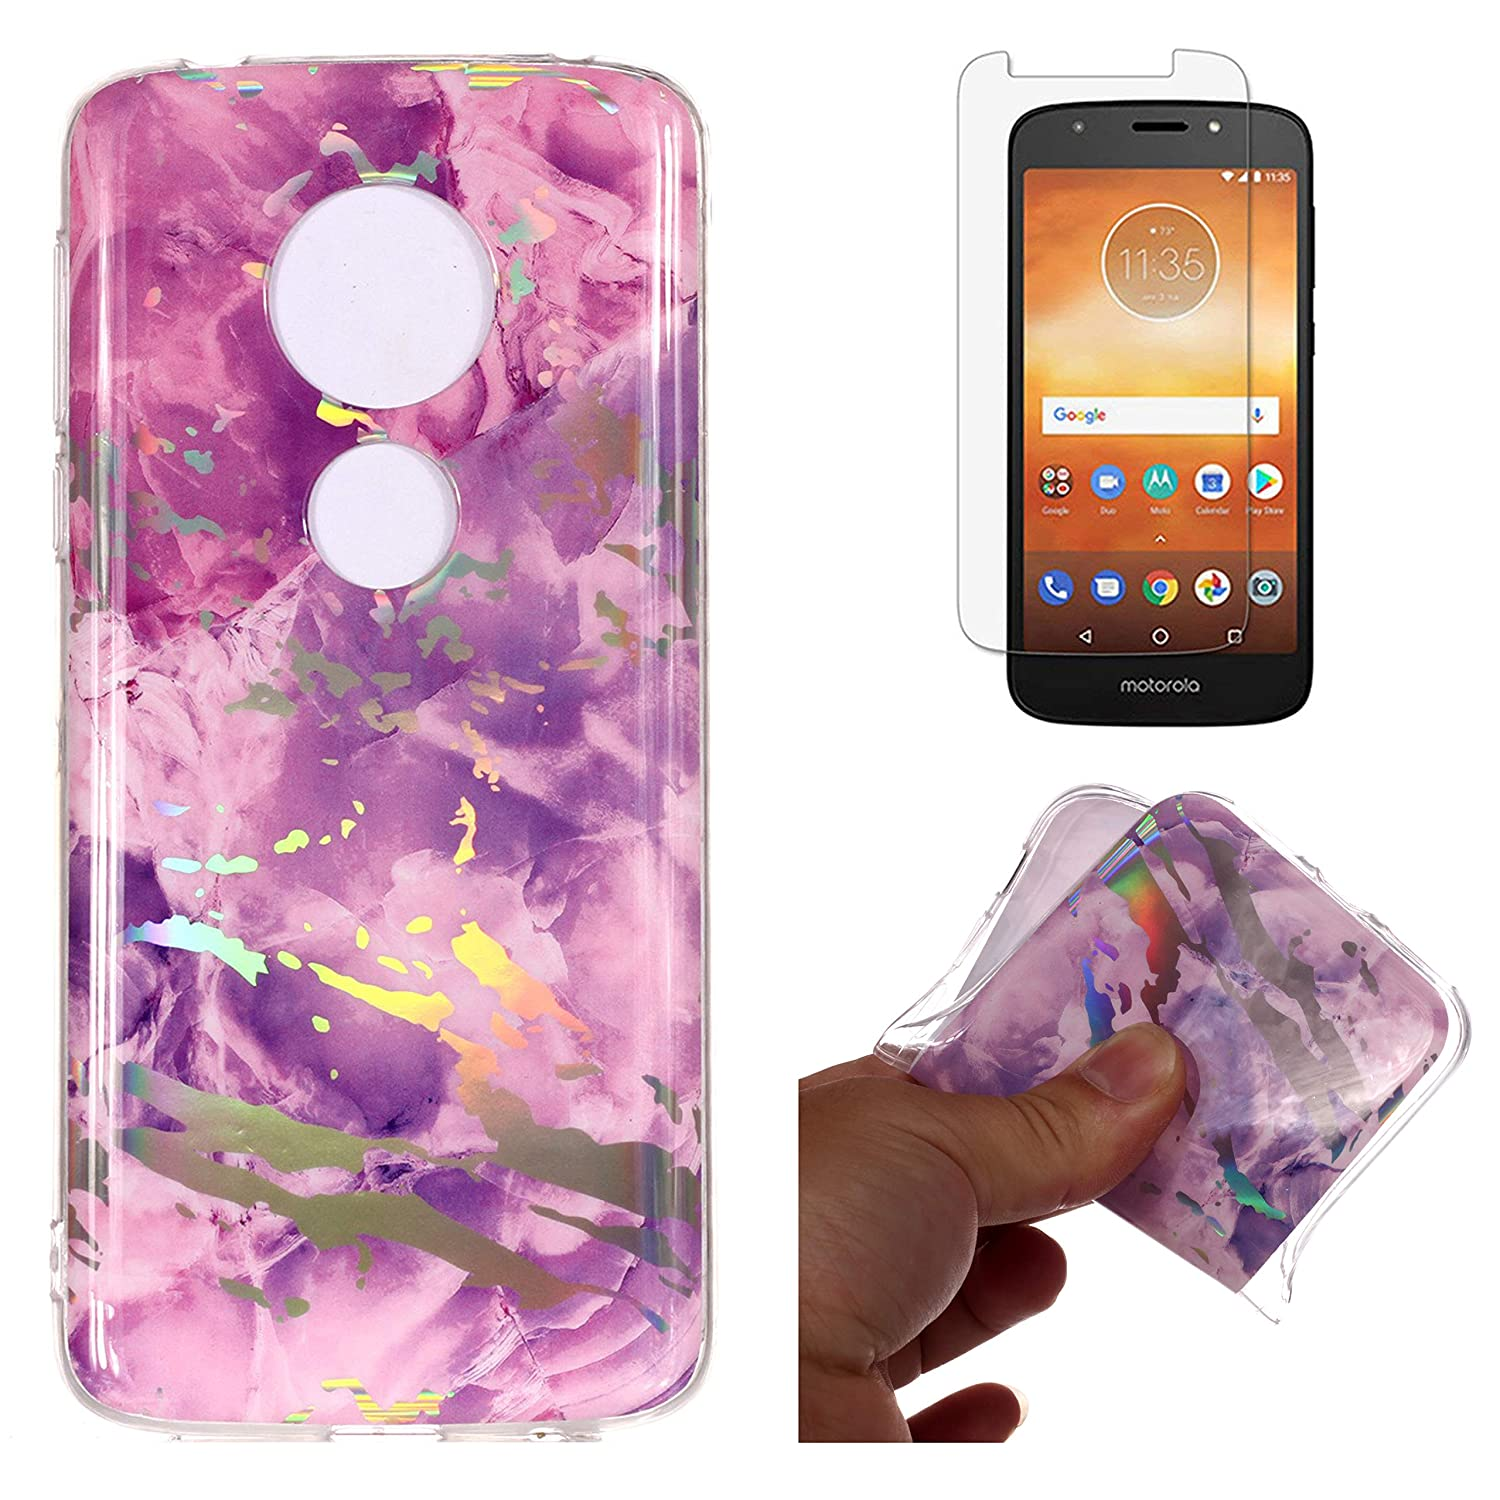 For Moto E5 Play Marble Case and Screen Protector , OYIME Luxury Colorful Plating Pattern Skin Design Clear Silicone Rubber Slim Fit Ultra Thin Protective Back Cover Glossy Soft Gel TPU Shell Shockproof Drop Protection Transparent Bumper Case for Motorola